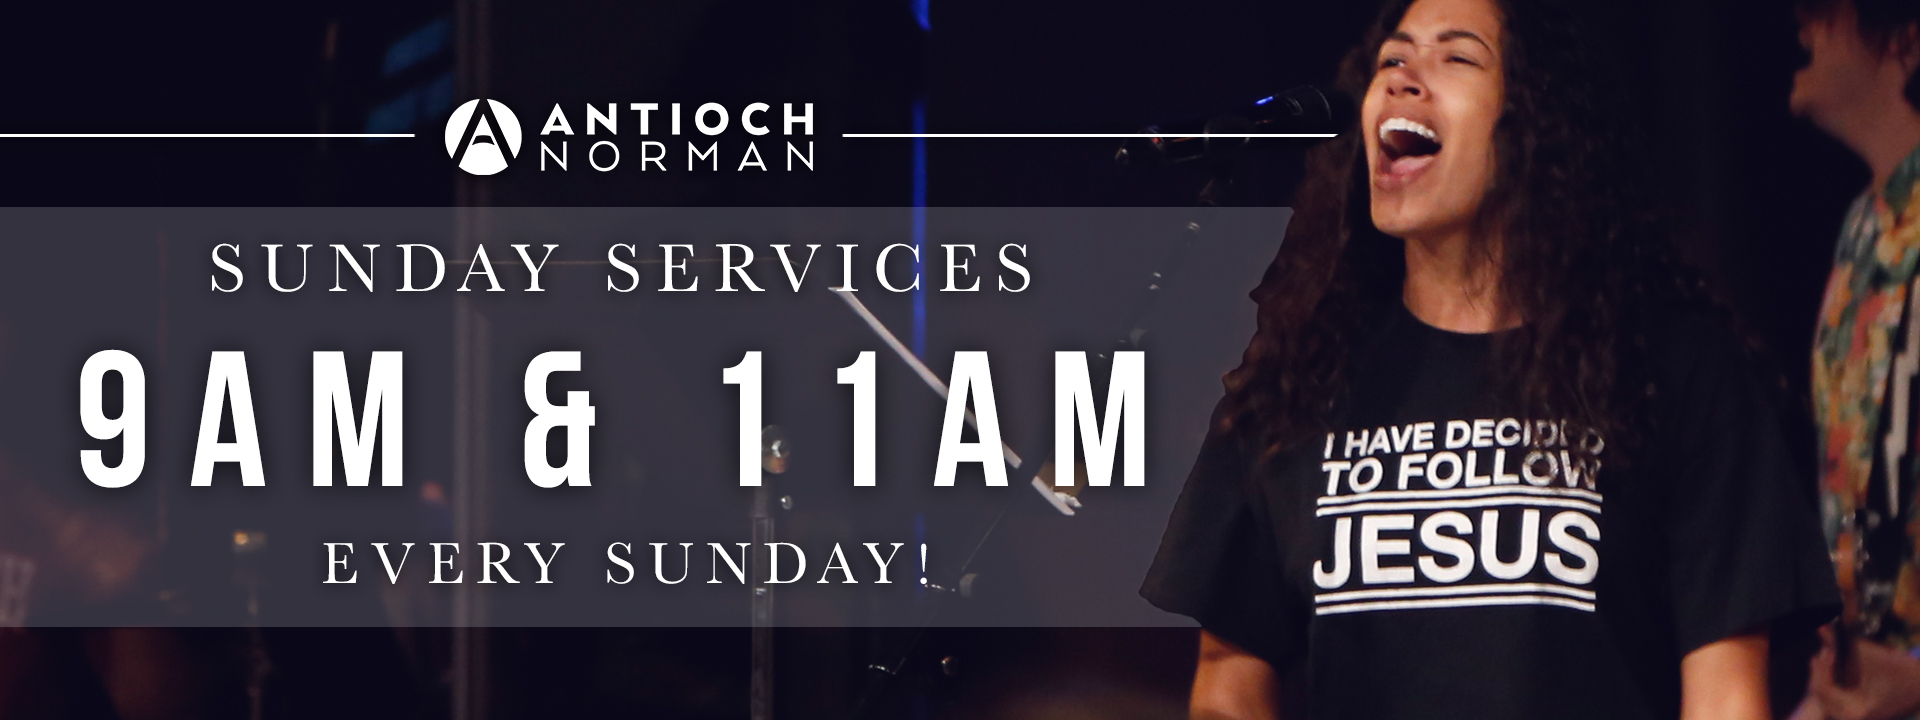 Antioch_Sunday-Schedule_Fall-19_Web-Banner.jpg